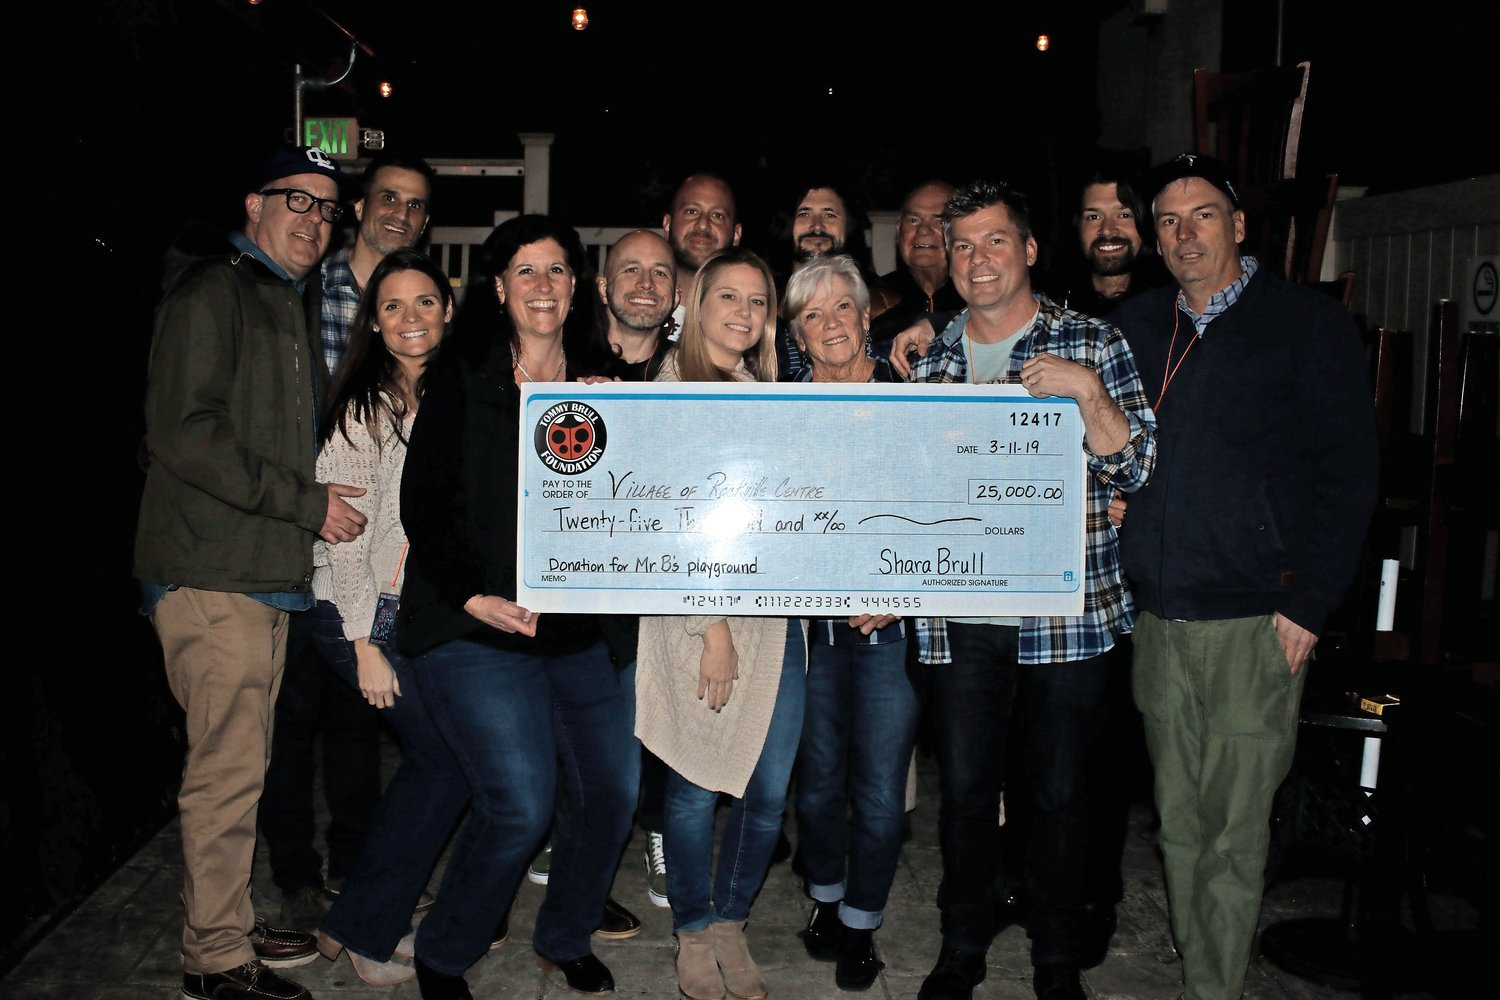 Members of Taking Back Sunday and the Tommy Brull Foundation held a check for $25,000 to be donated to Mr. B's Playground.